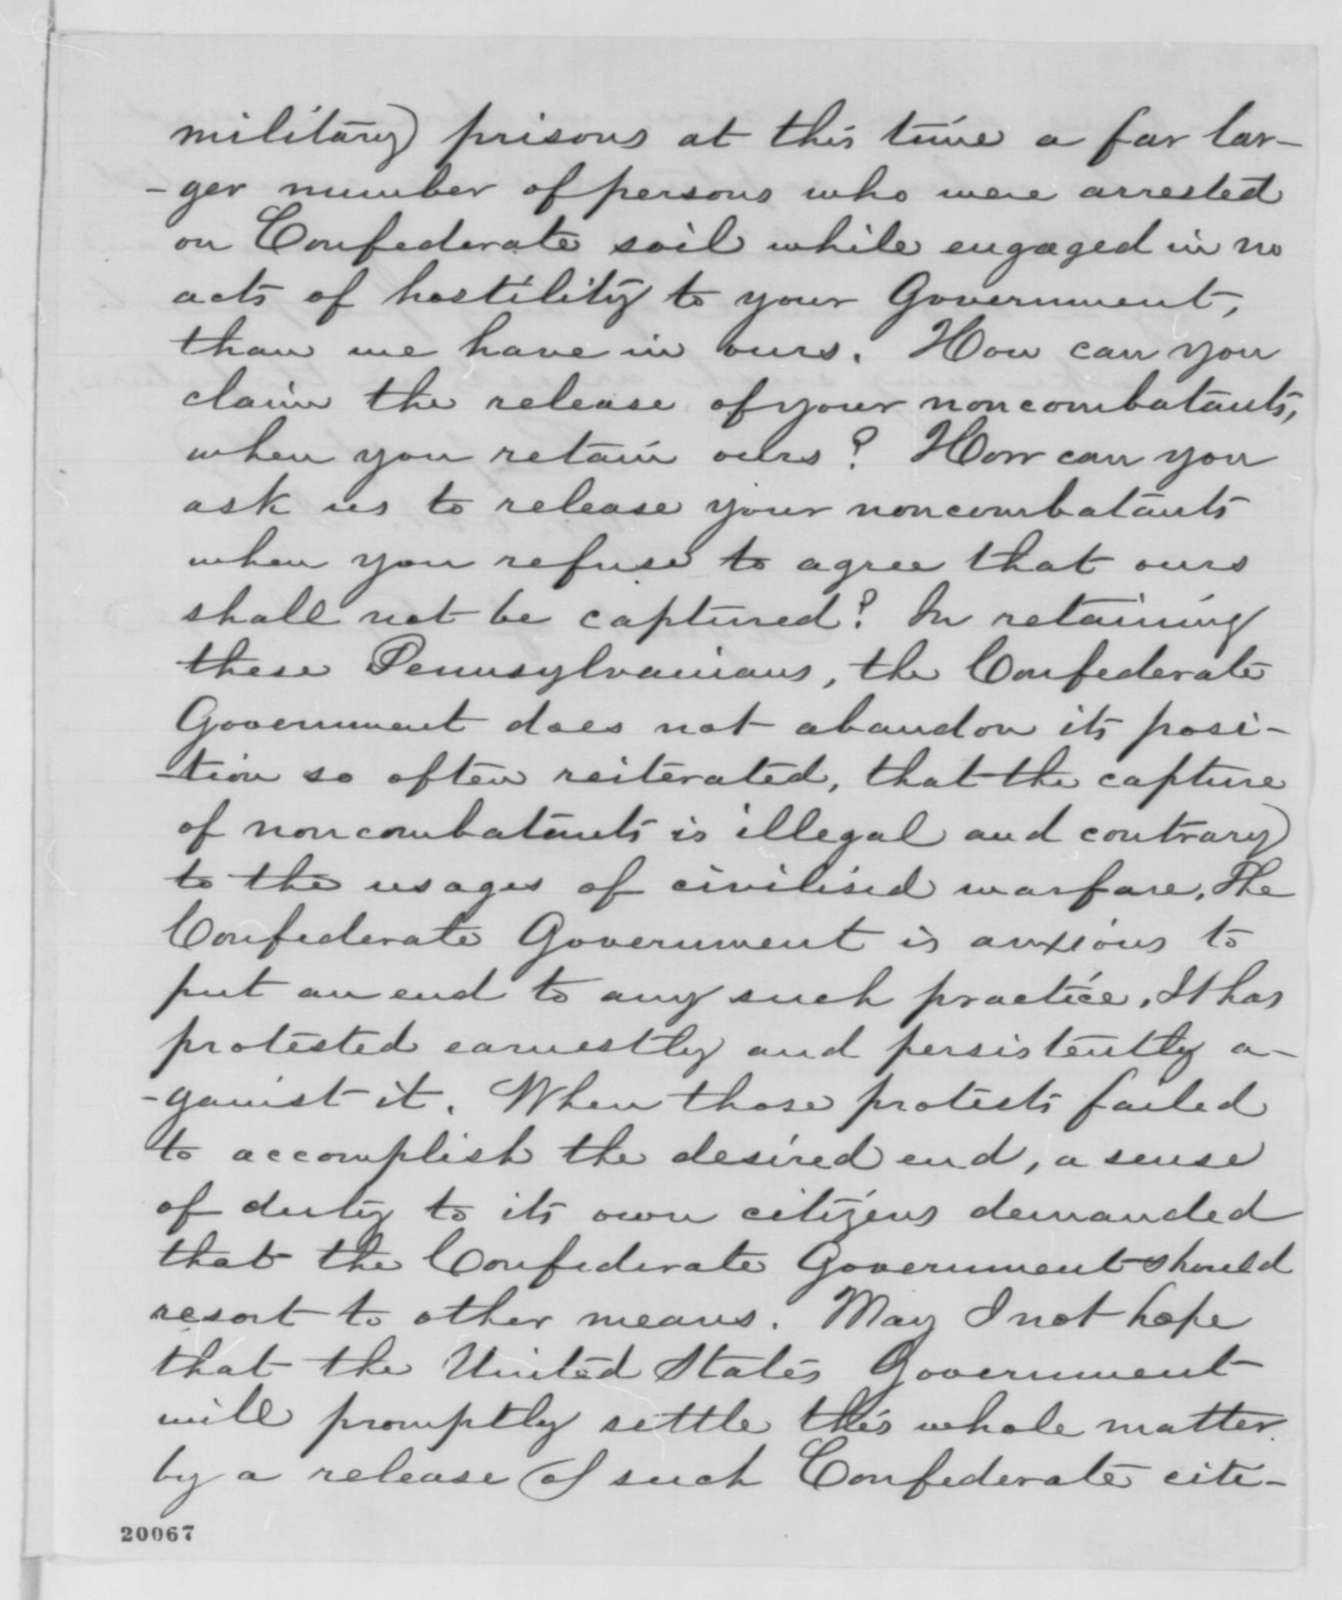 Robert Ould to William H. Ludlow, Thursday, December 11, 1862  (Release of captured civilians)